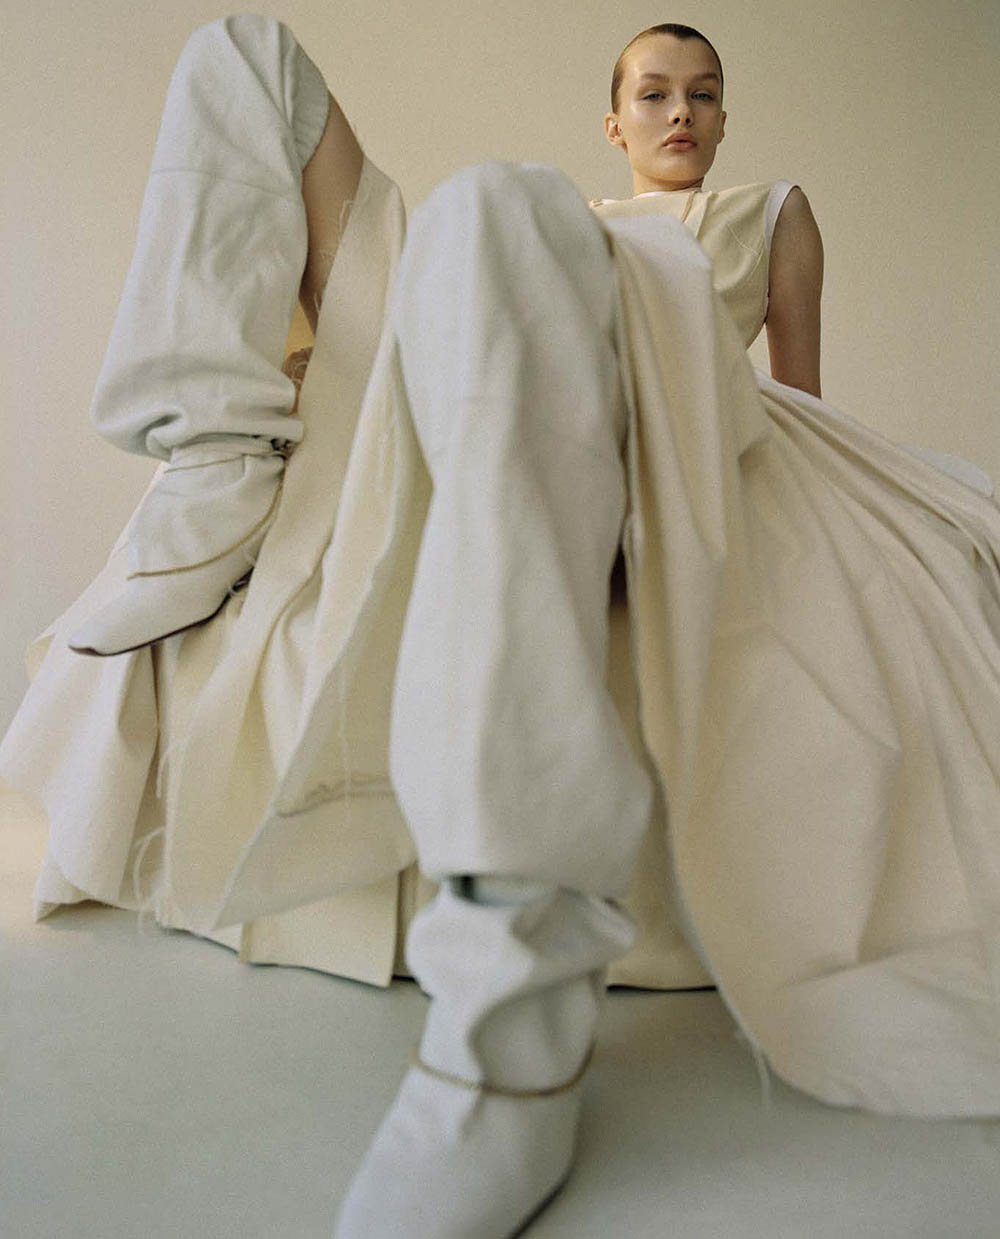 Kris Grikaite by Brianna Capozzi for Vogue Italia April 2019